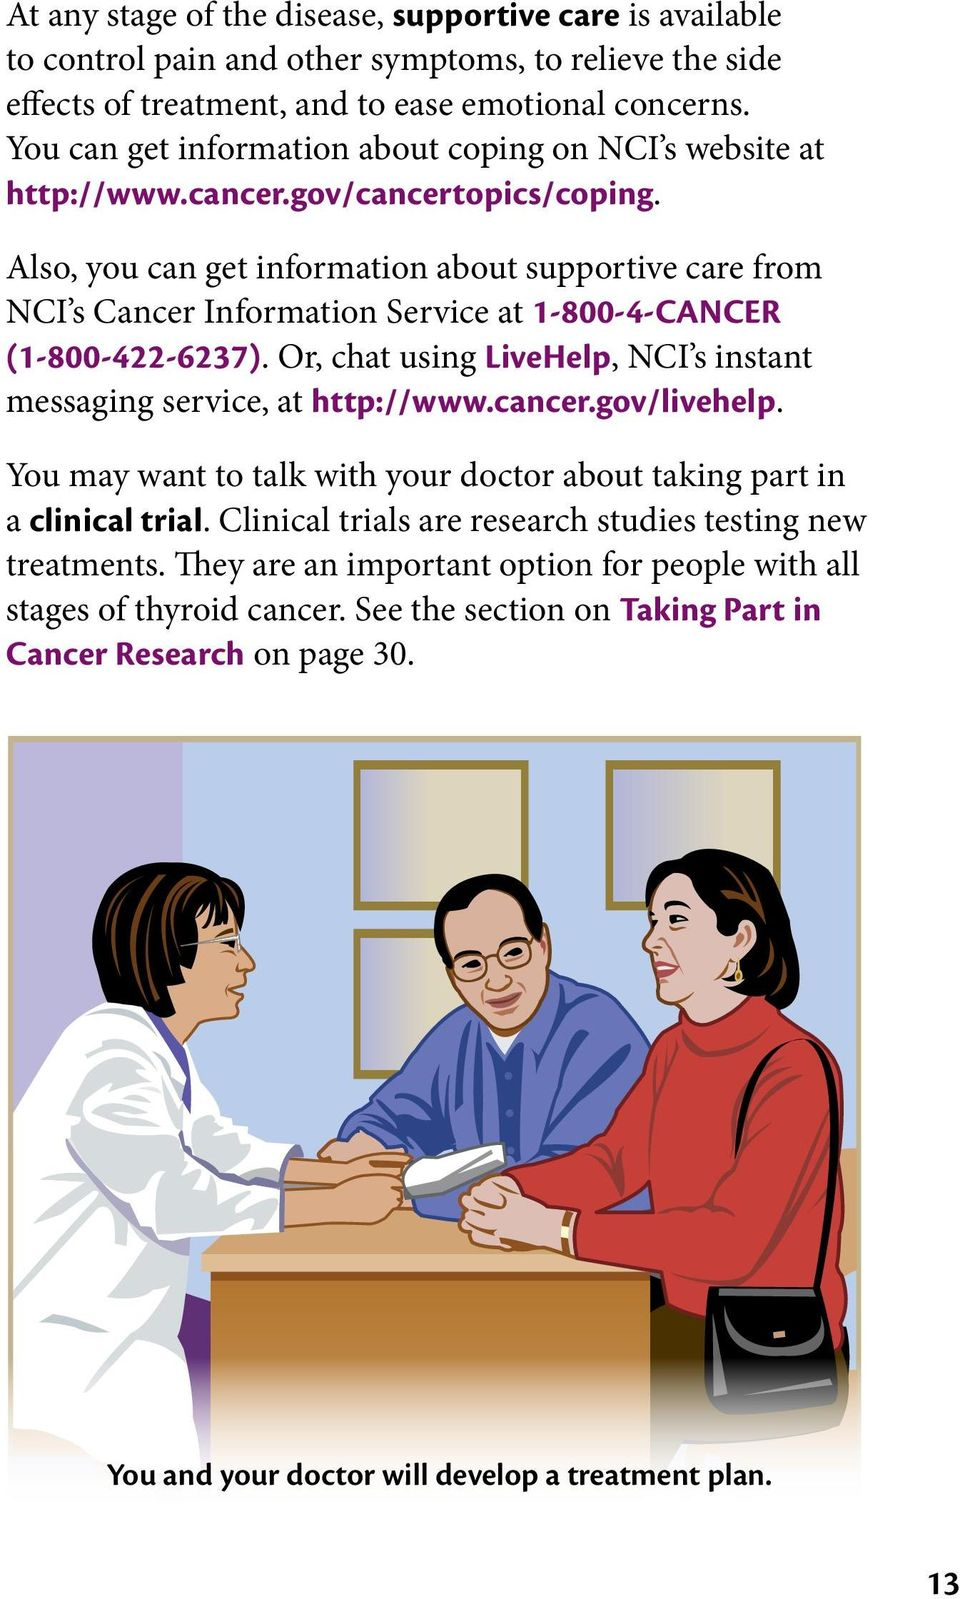 Also, you can get information about supportive care from NCI s Cancer Information Service at 1-800-4-CANCER (1-800-422-6237). Or, chat using LiveHelp, NCI s instant messaging service, at http://www.